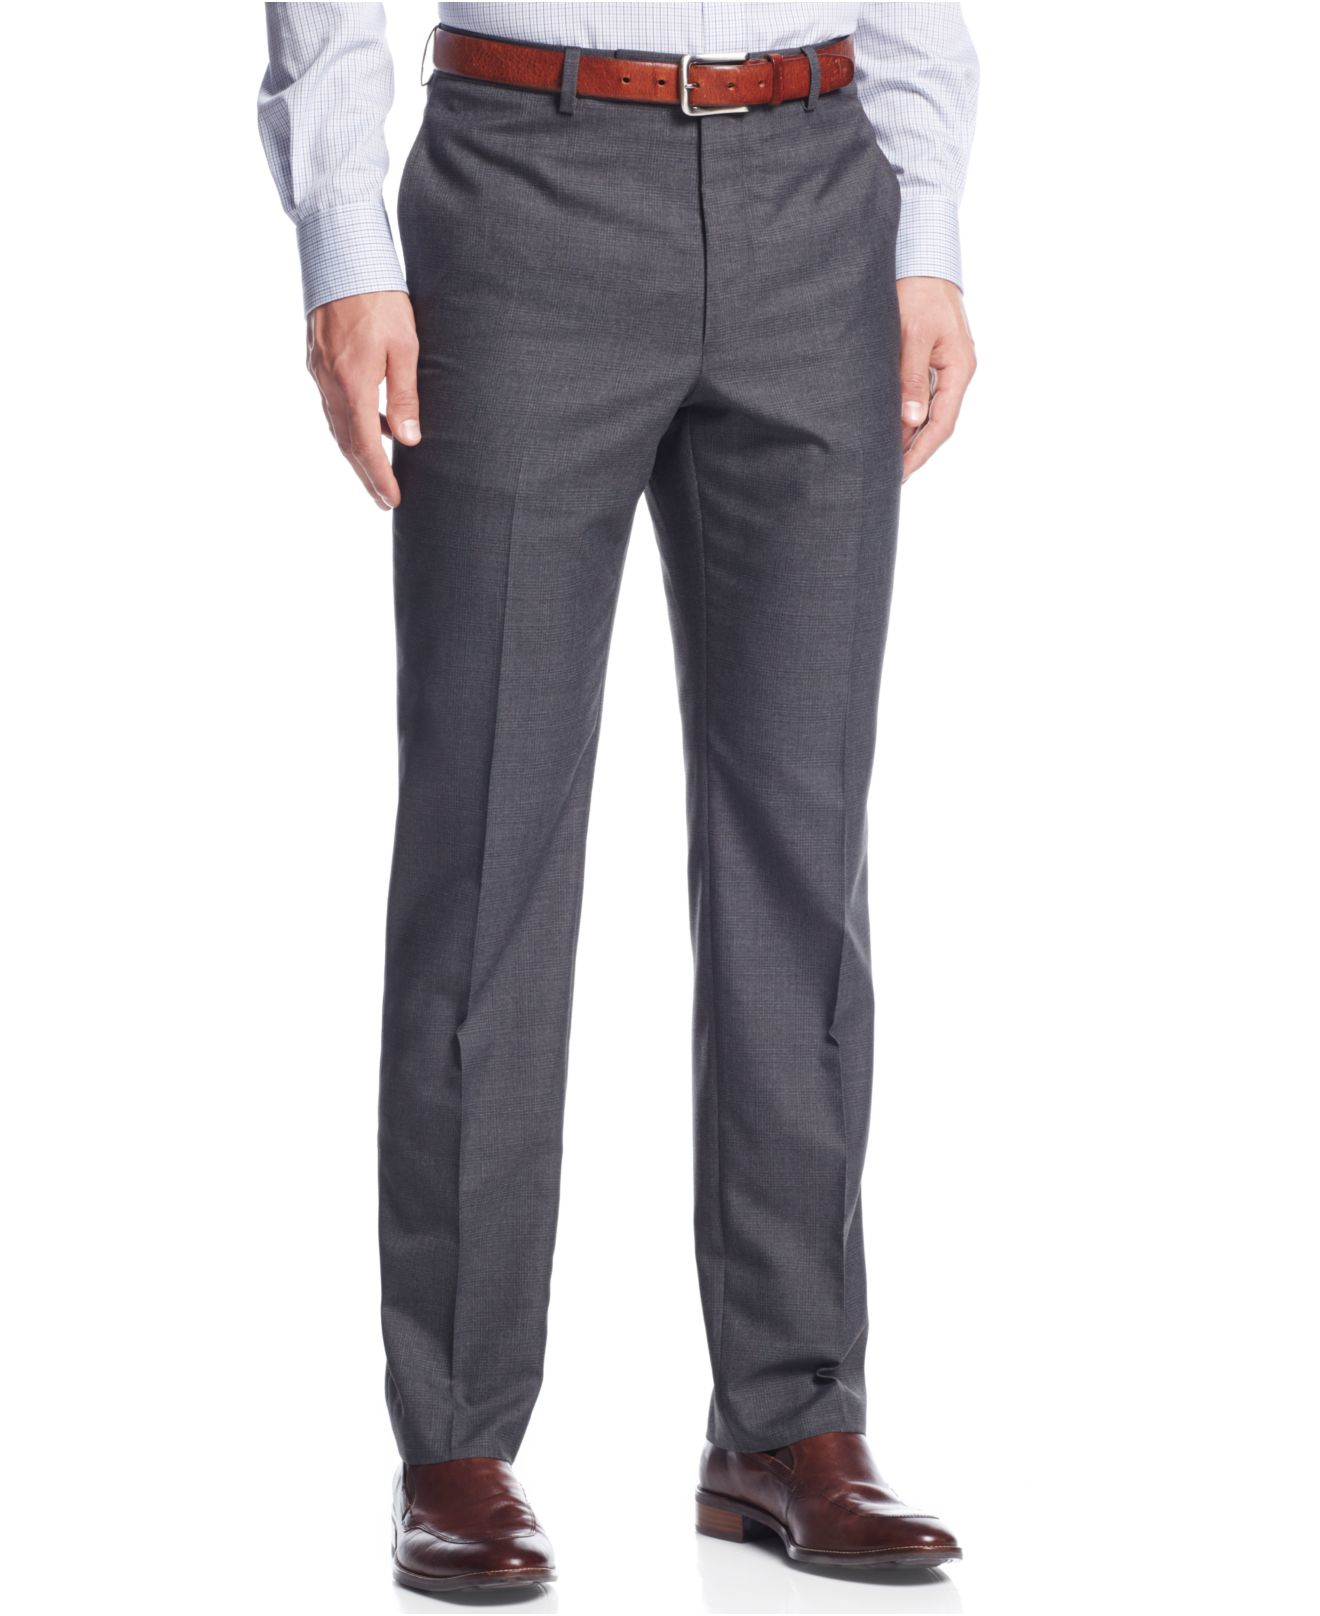 FREE SHIPPING AVAILABLE! Shop newbez.ml and save on Gray Pants.